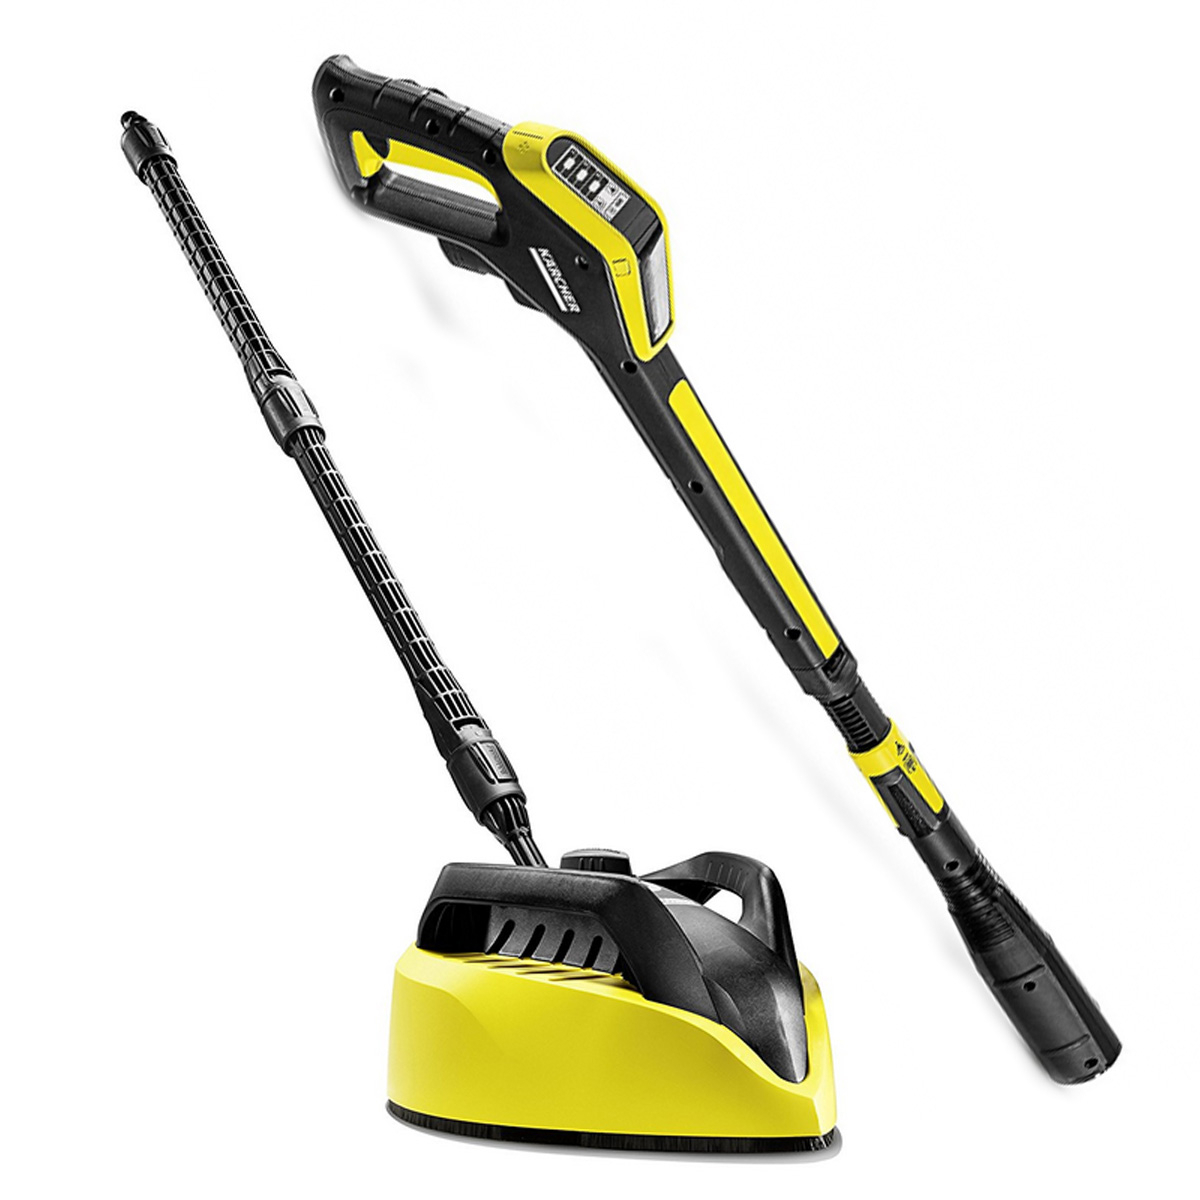 Karcher K7 Premium Full Control Home Karcher K5 Full Control